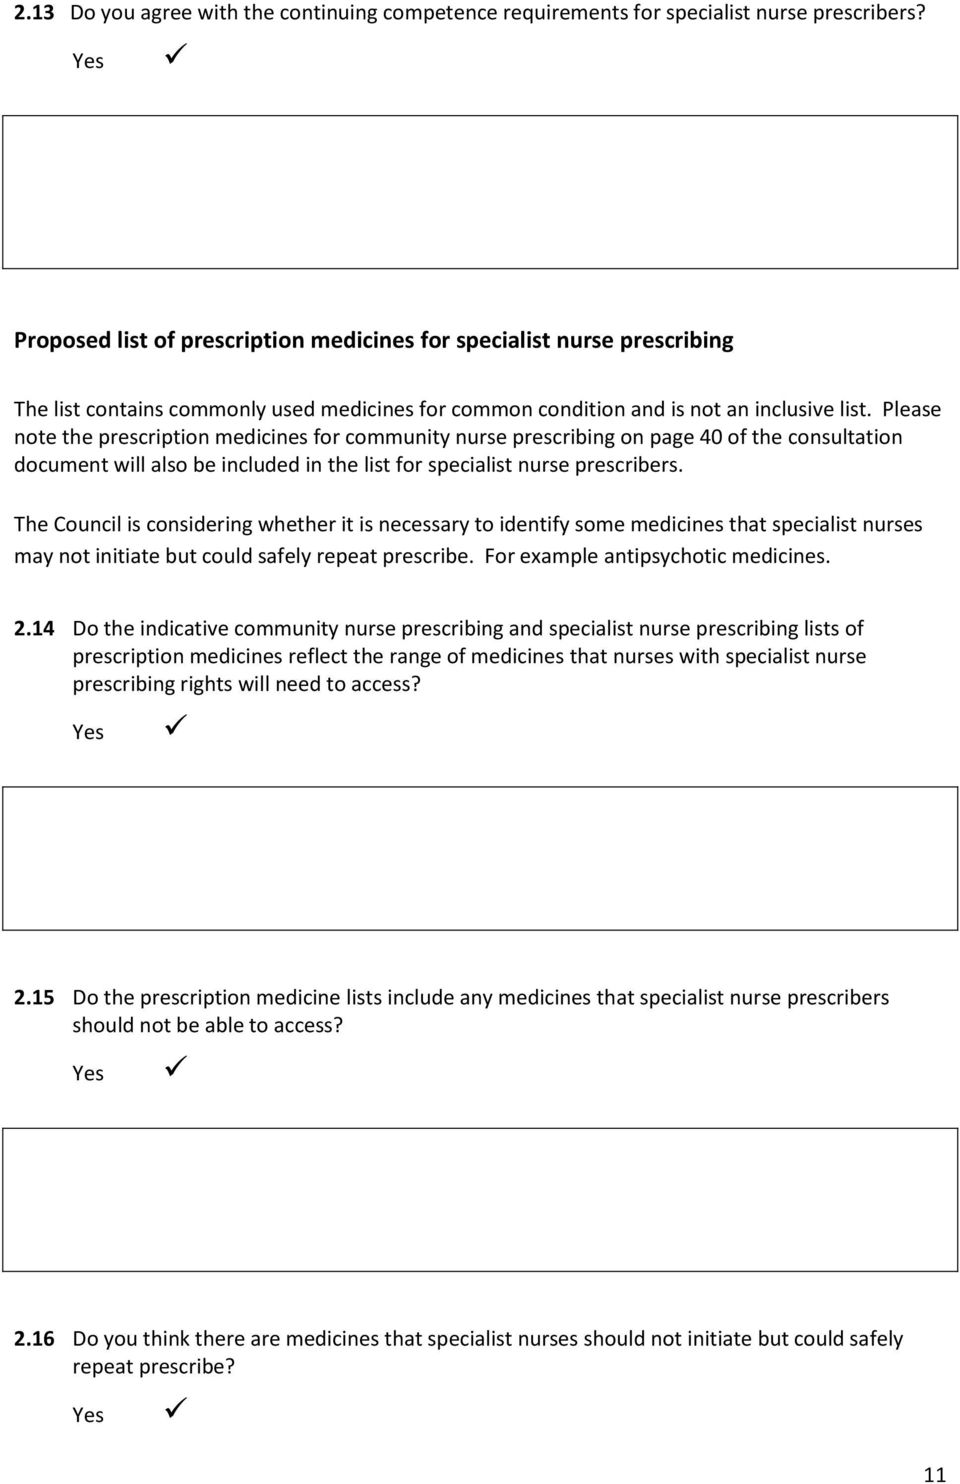 Please note the prescription medicines for community nurse prescribing on page 40 of the consultation document will also be included in the list for specialist nurse prescribers.